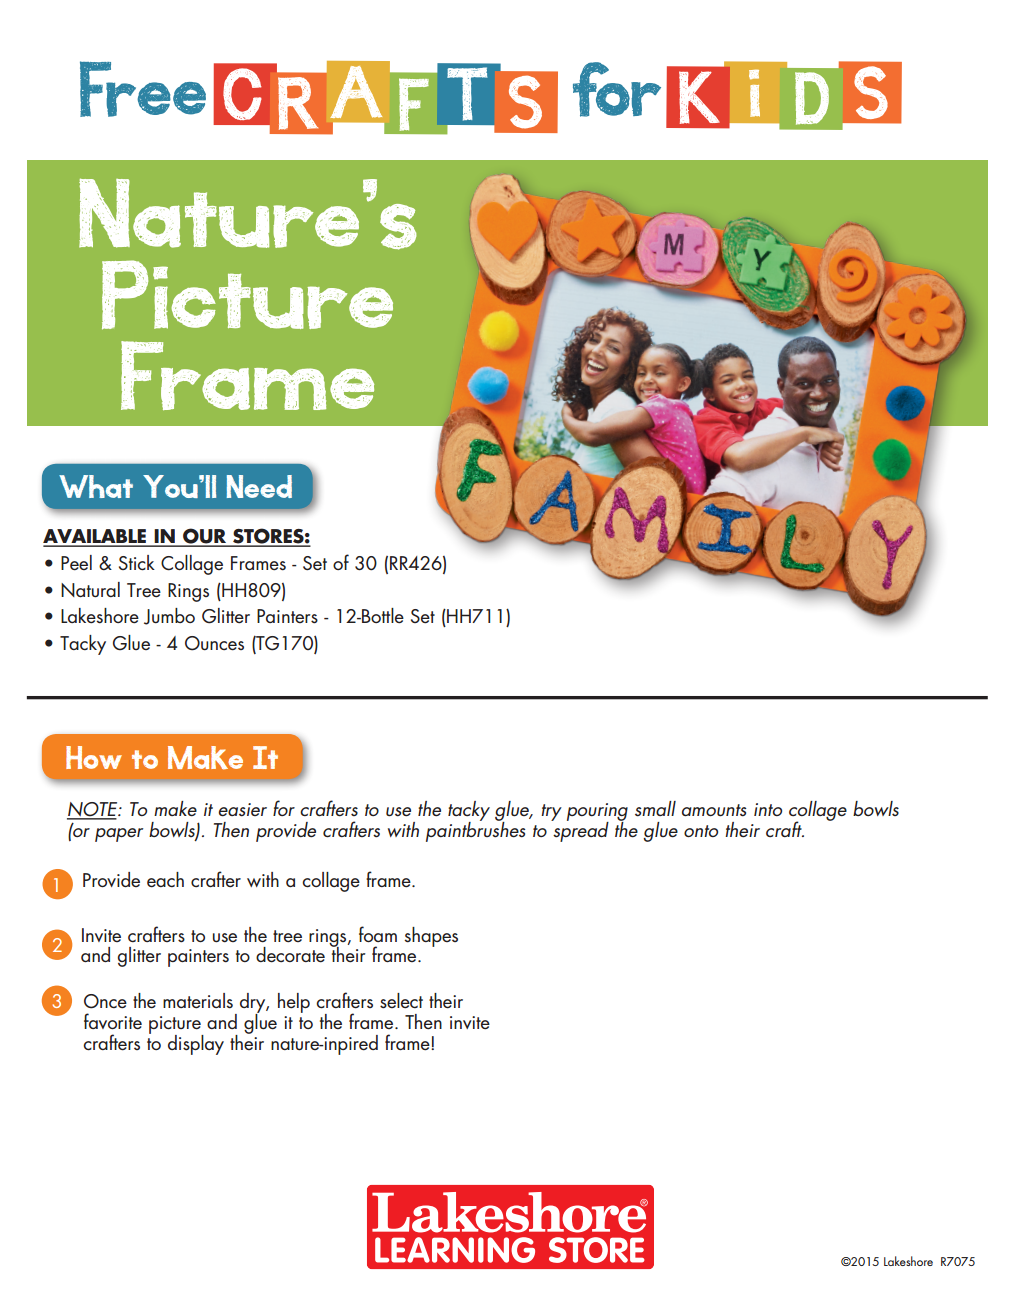 Instruction sheet from lakeshores free crafts for kids event instruction sheet from lakeshores free crafts for kids event featuring the natures picture frame jeuxipadfo Gallery